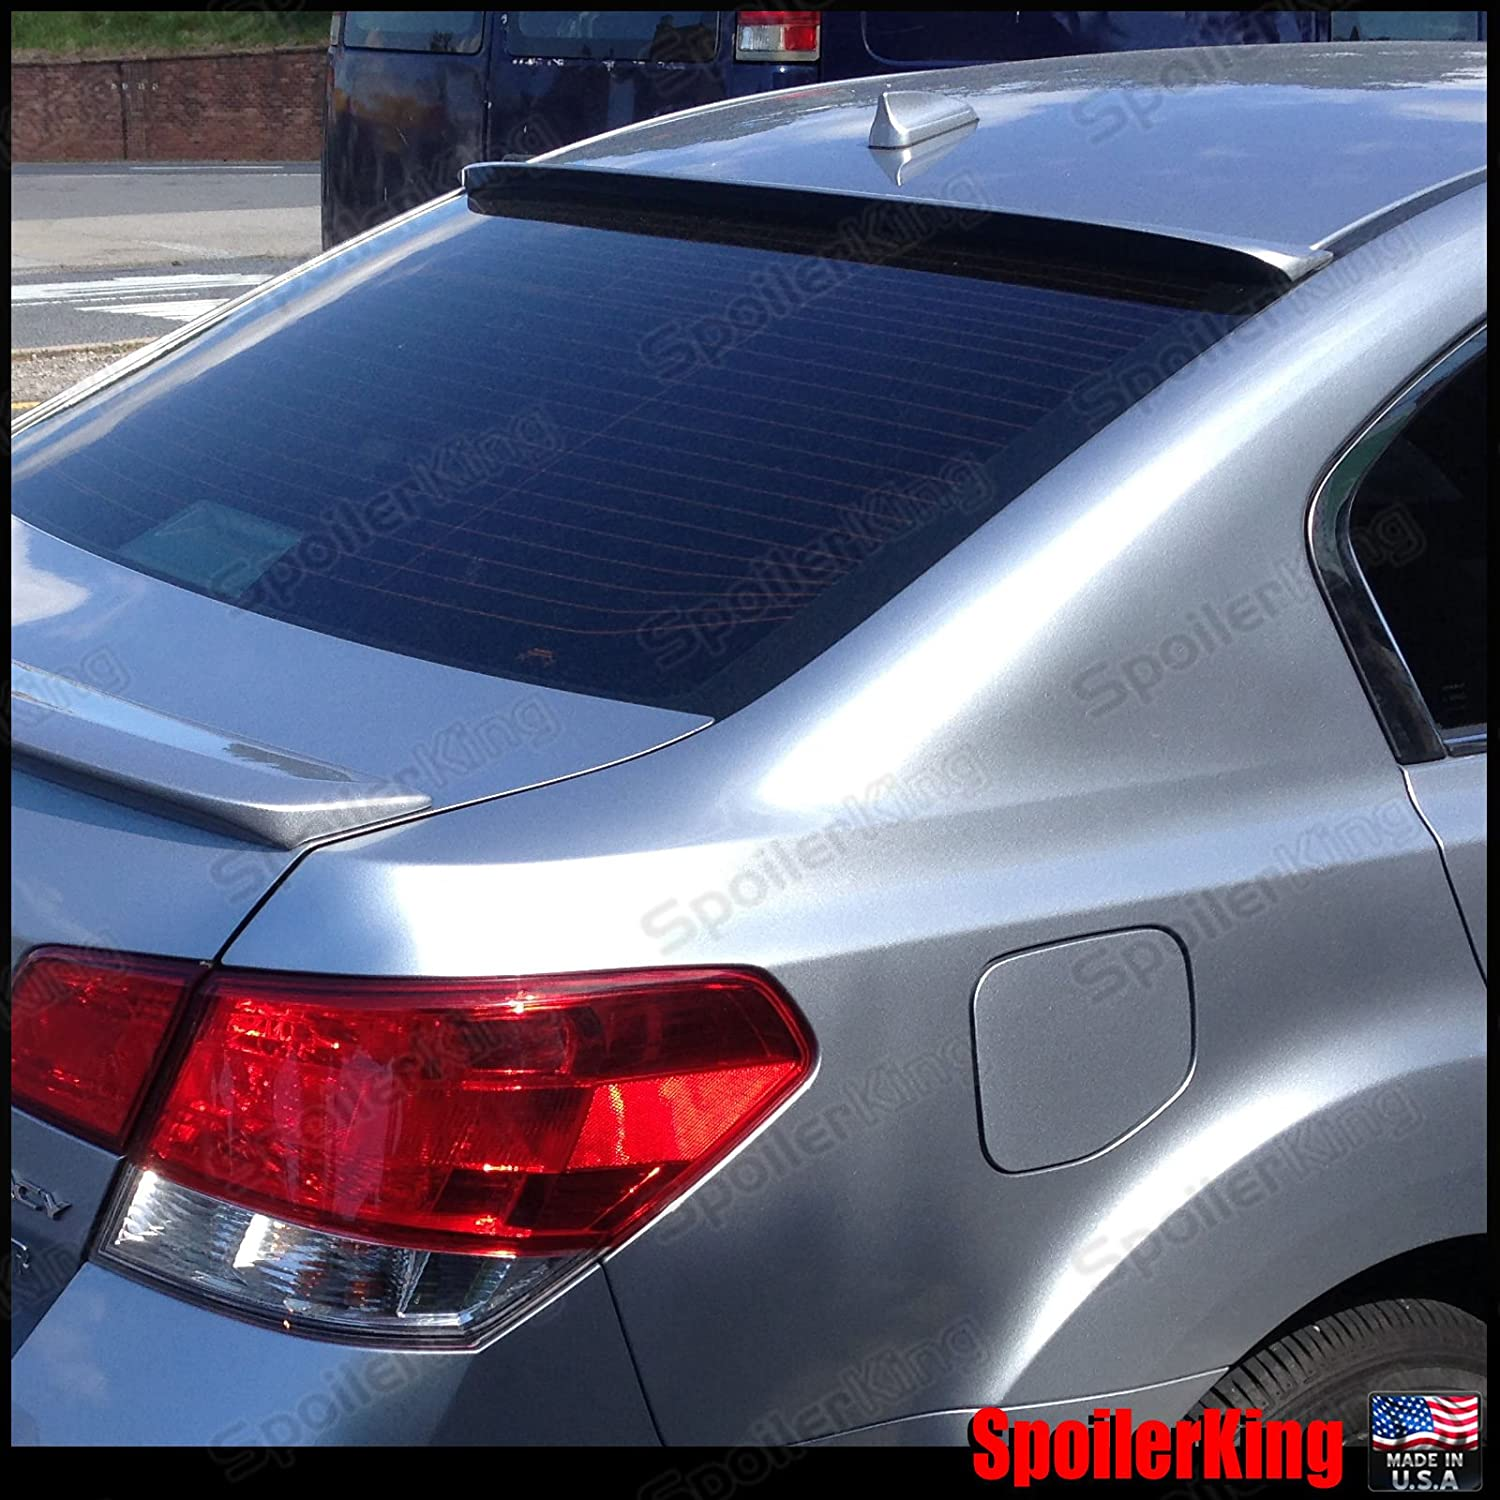 Awesome Amazon.com: Subaru Legacy 2010 2015 Rear Window Roof Spoiler (284R):  Automotive